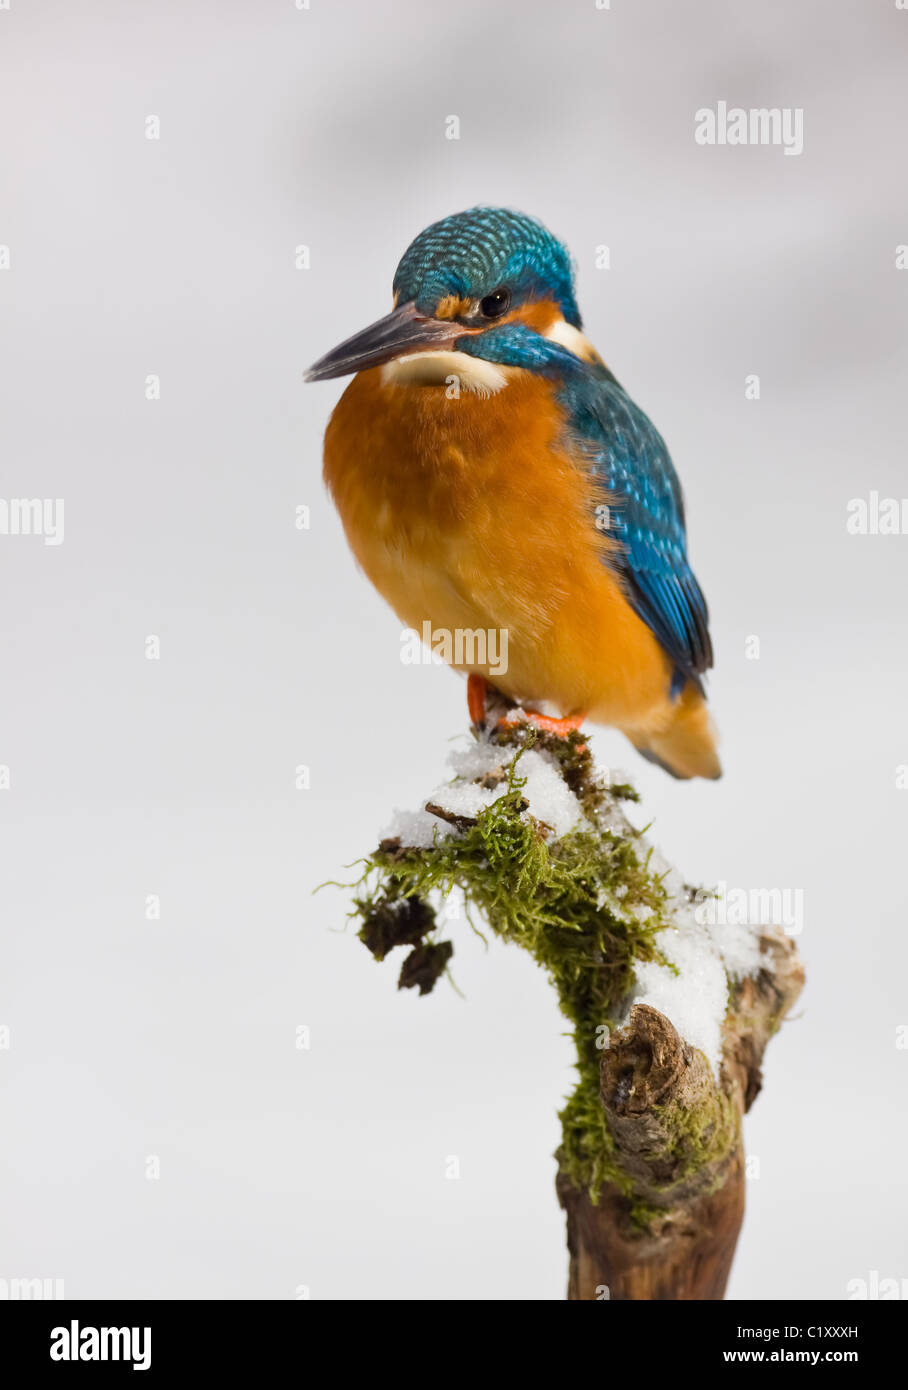 Kingfisher in winter - Stock Image